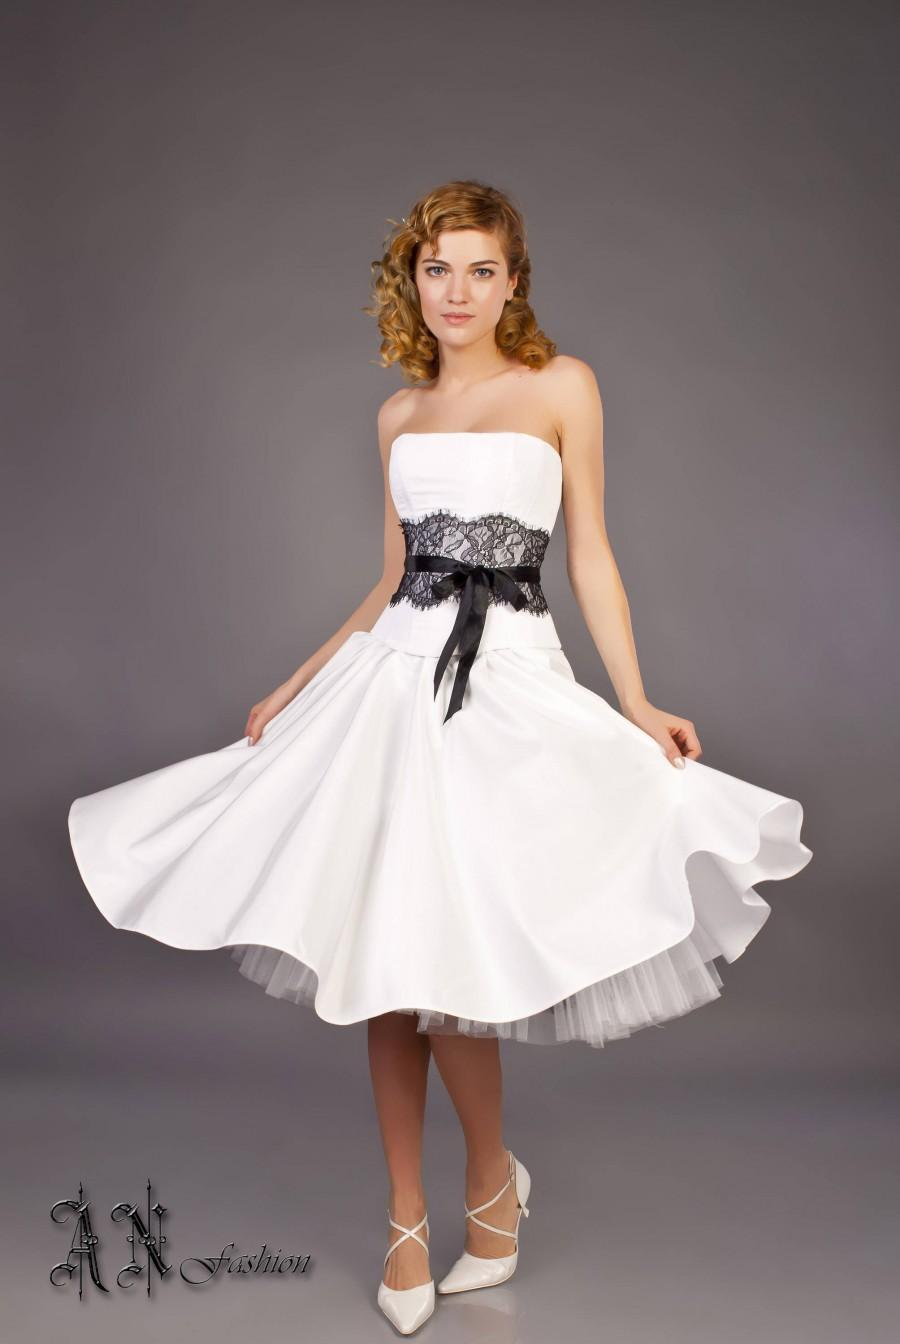 Black white a line wedding dress short wedding dress for Black tea length wedding dress